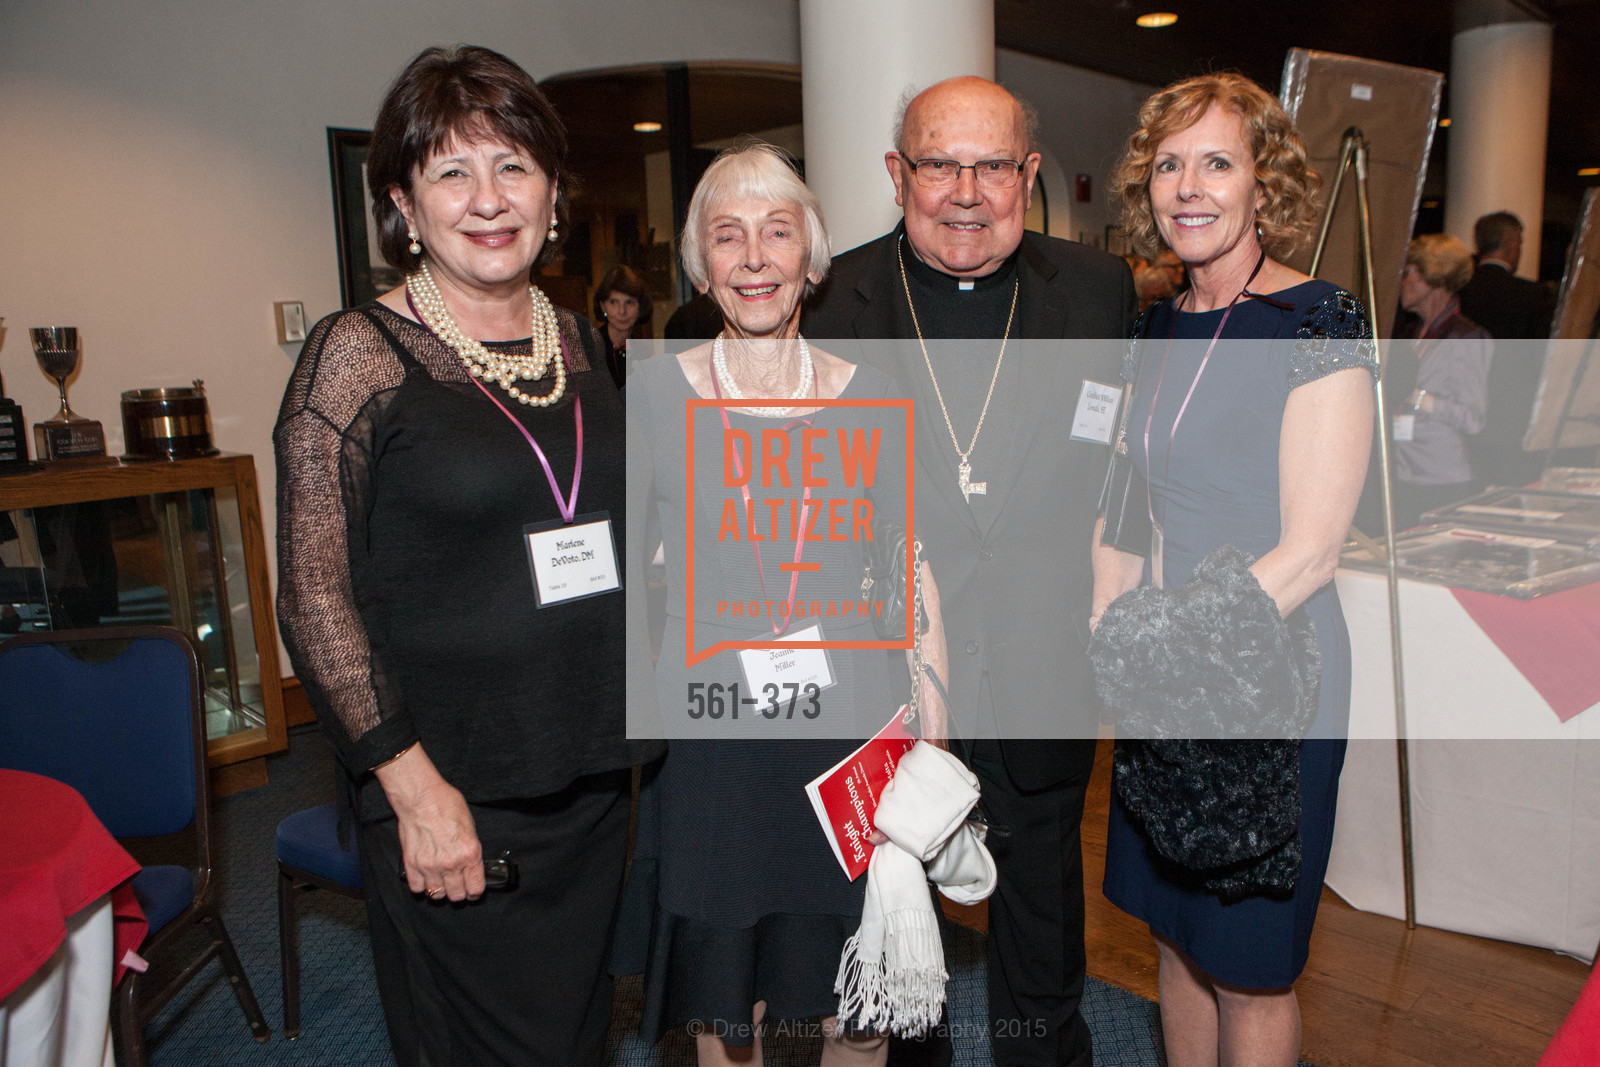 Marlene DeVoto, Jeanne Miller, William Levada, Ellen Field, Sovereign Order of Malta Presents: A Knight for Champions, 7th Annual Silver Chalice Awards Dinner, St. Francis Yacht Club. 99 Yacht Rd, October 13th, 2015,Drew Altizer, Drew Altizer Photography, full-service agency, private events, San Francisco photographer, photographer california